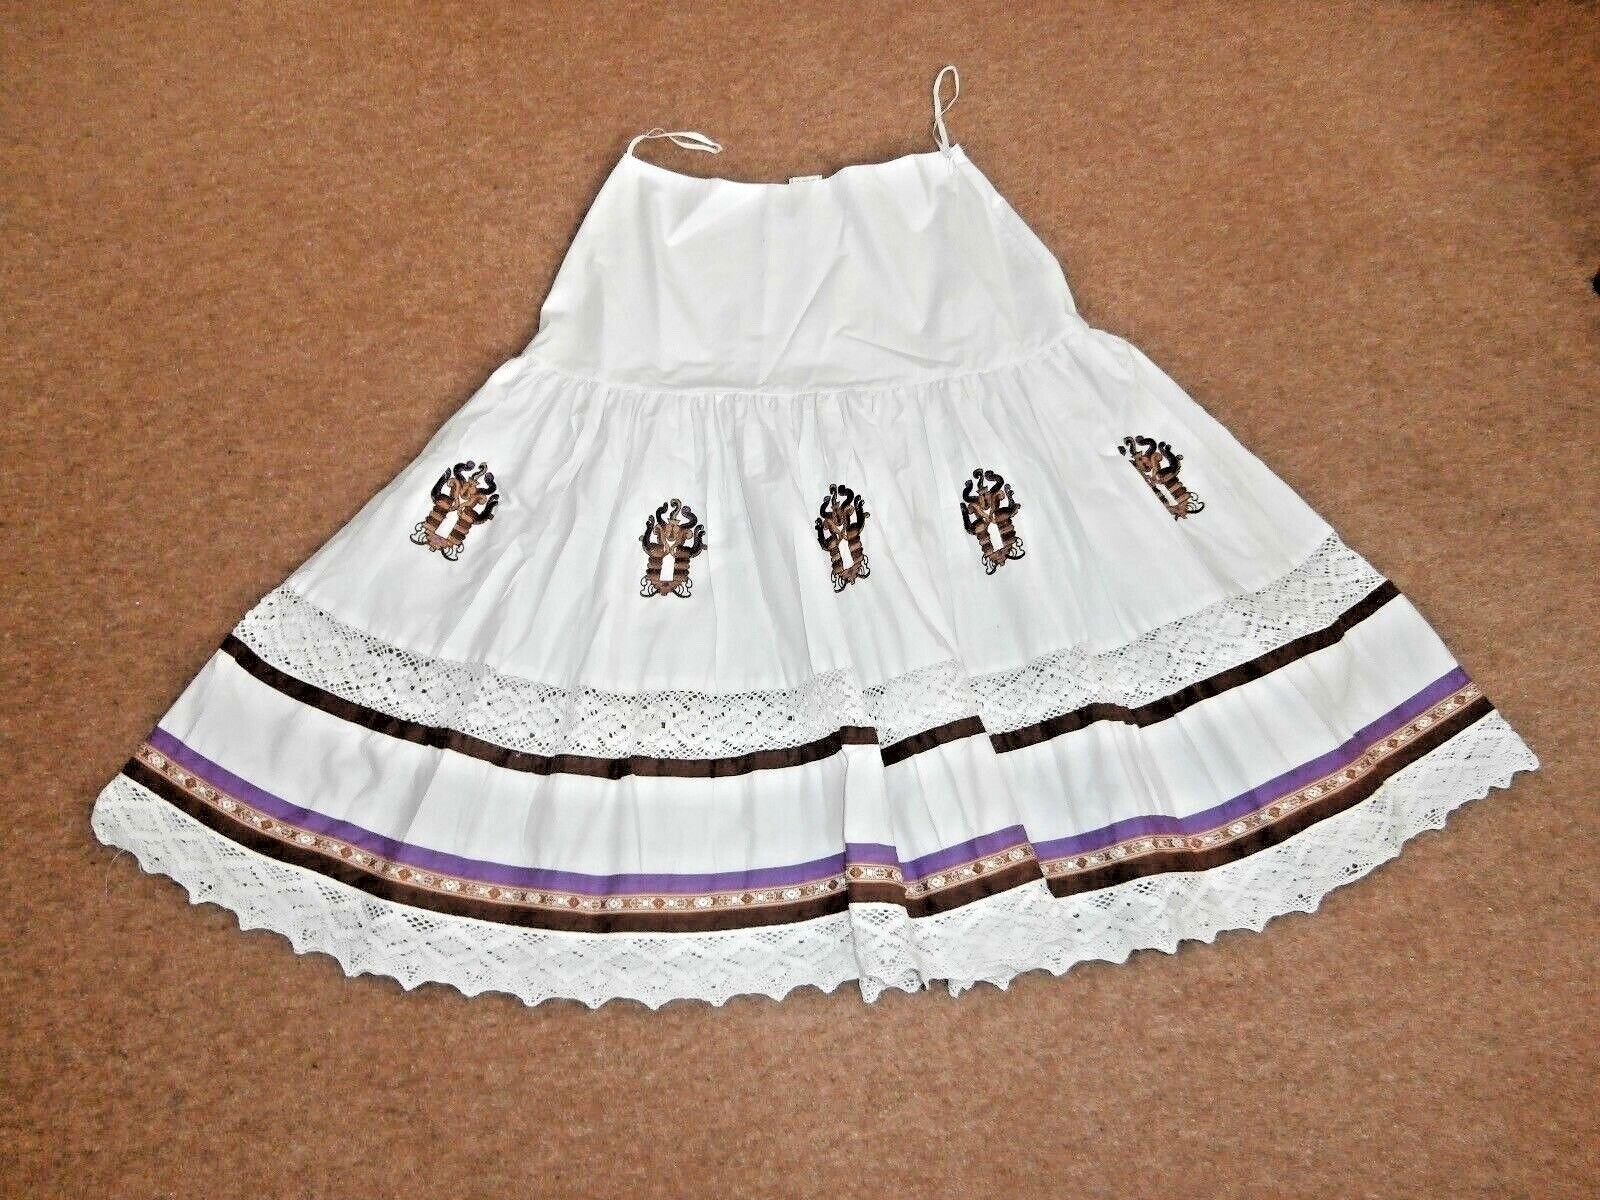 LADIES White cotton full summer skirt size 10 by blue white red